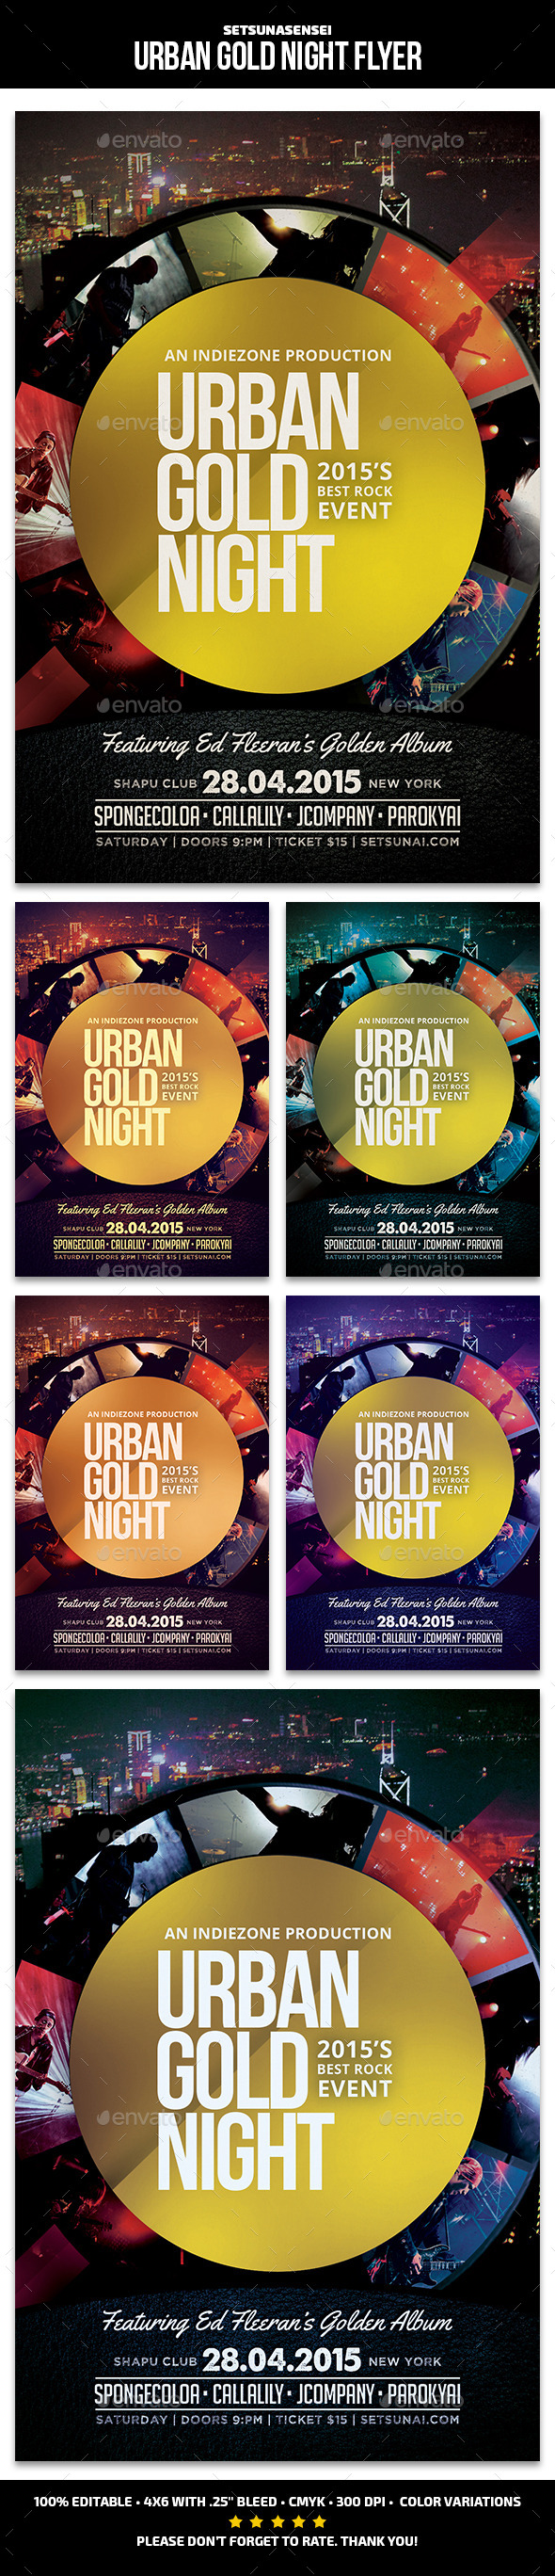 Urban Gold Night Flyer - Concerts Events